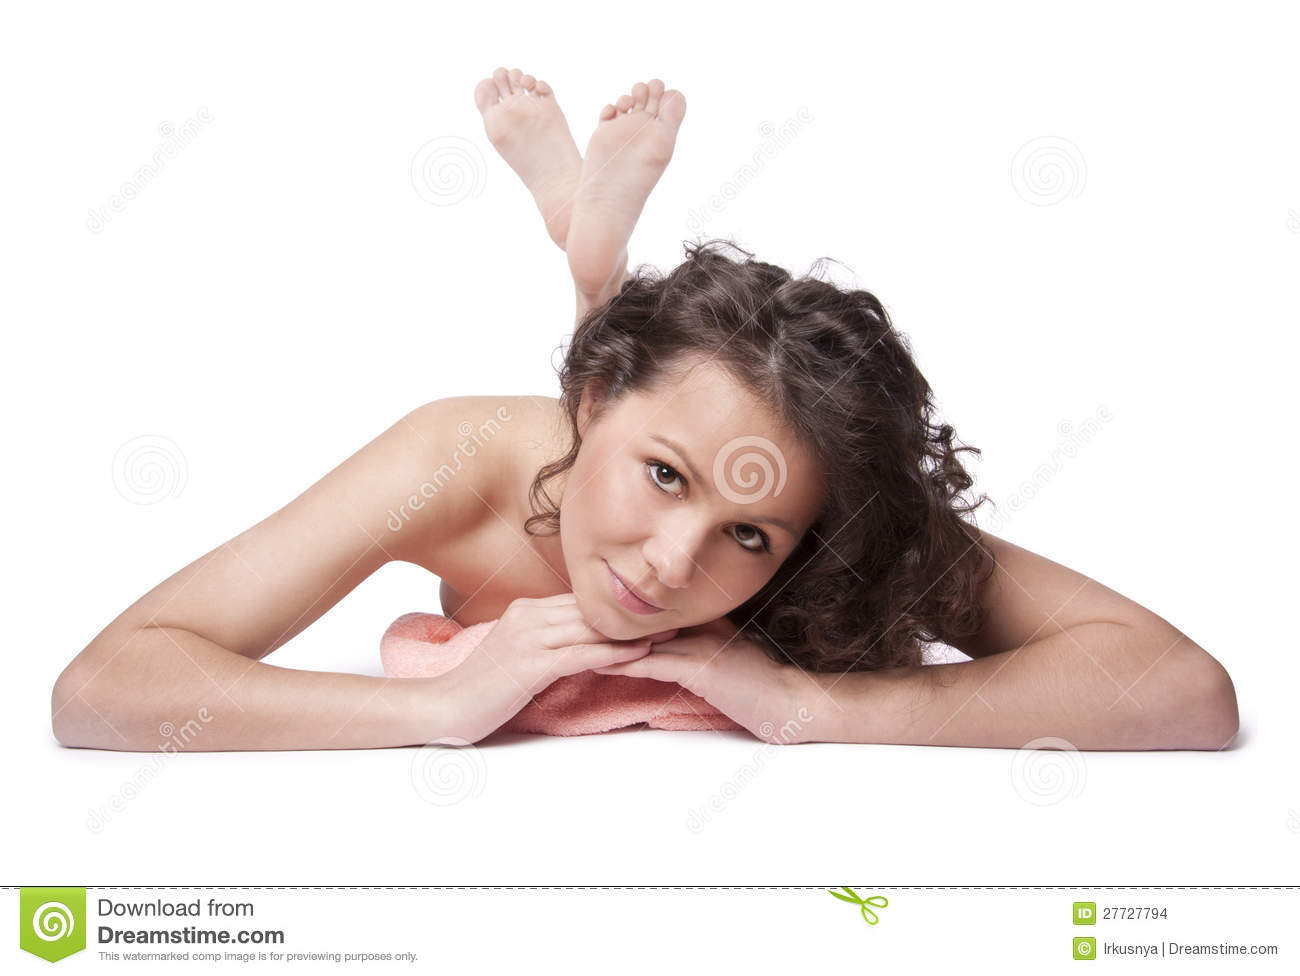 Naked beautiful woman smiling and lying on a towel